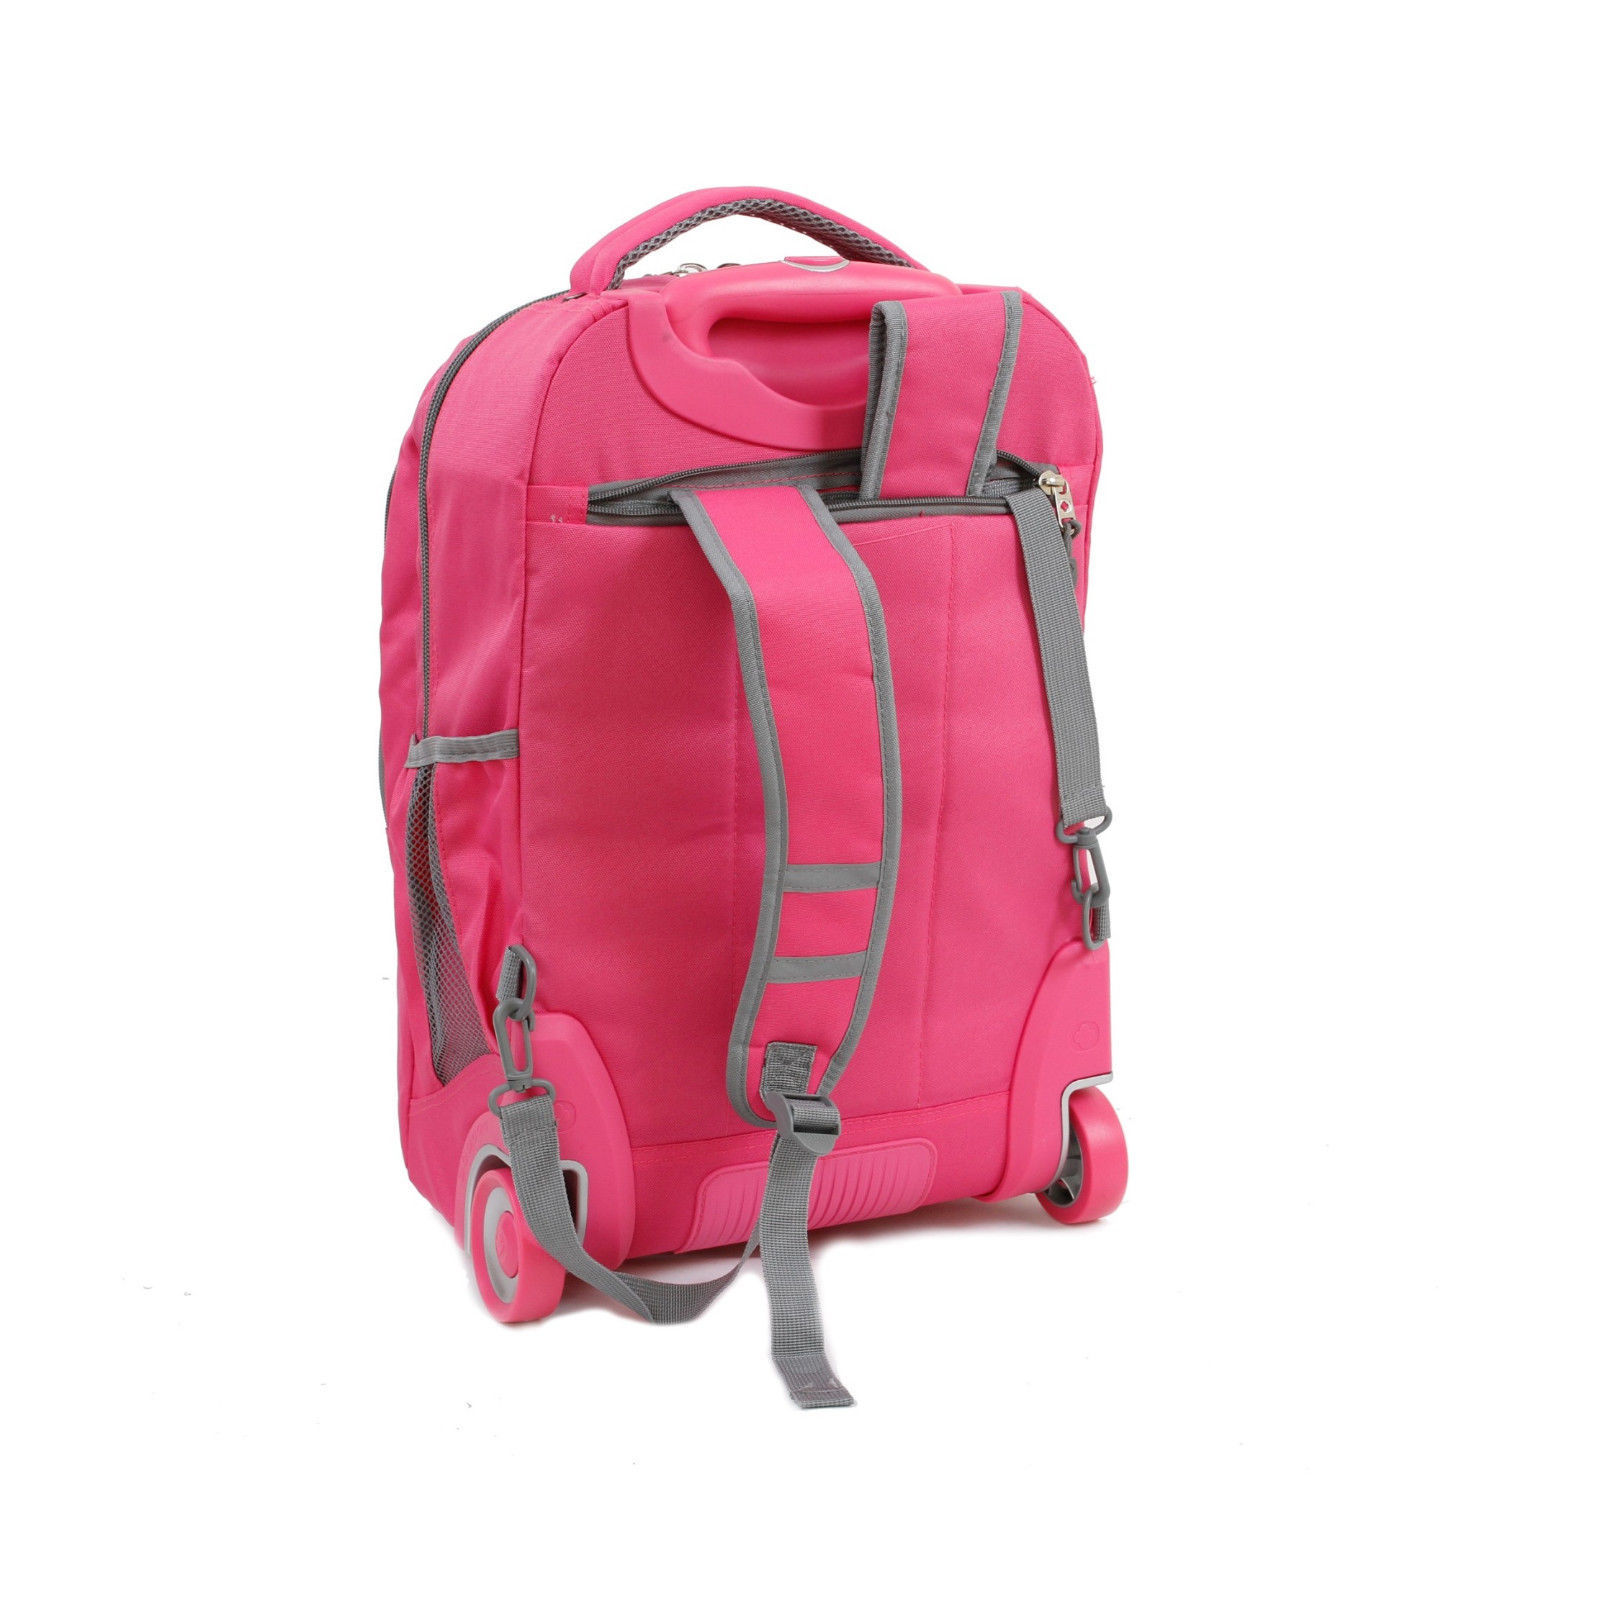 High Sierra Chaser Wheeled Laptop Backpack, Great for High School, College Backpack, Rolling School Bag, Business Backpack, Travel Backpack, Carry-on Bag Perfect for Men and Women.